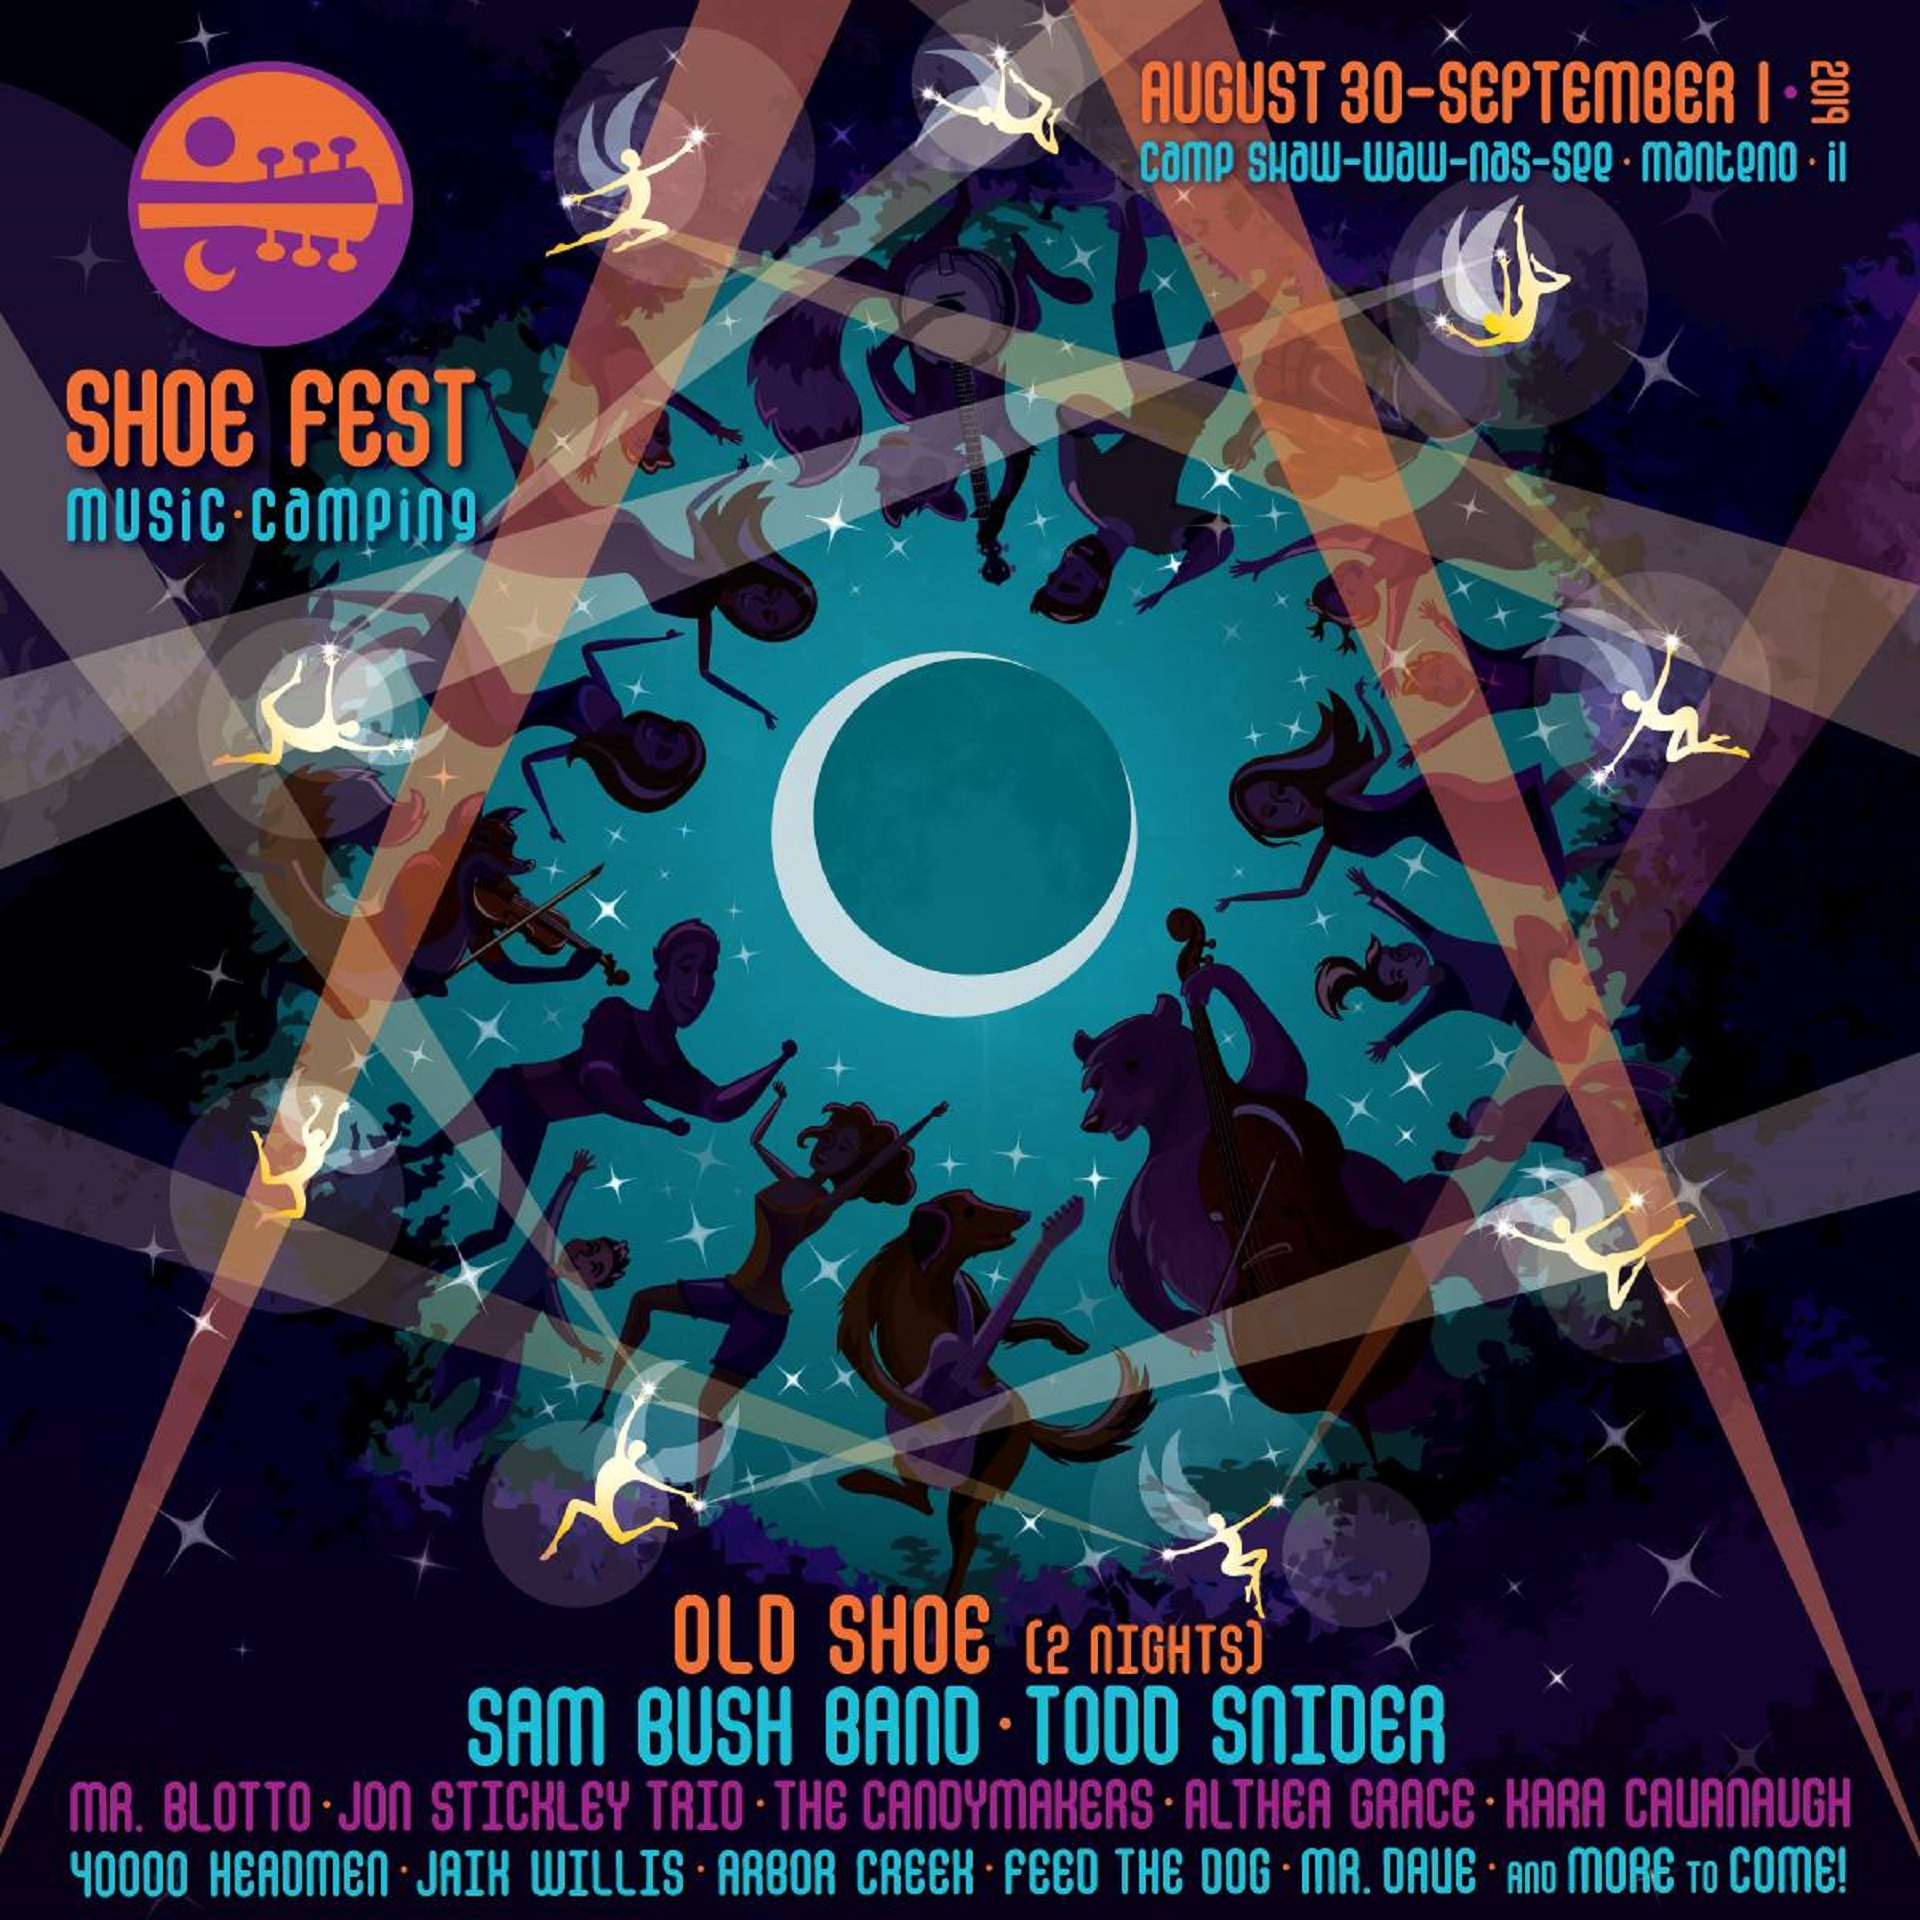 Shoe Fest announces first round lineup with Sam Bush and Todd Snider